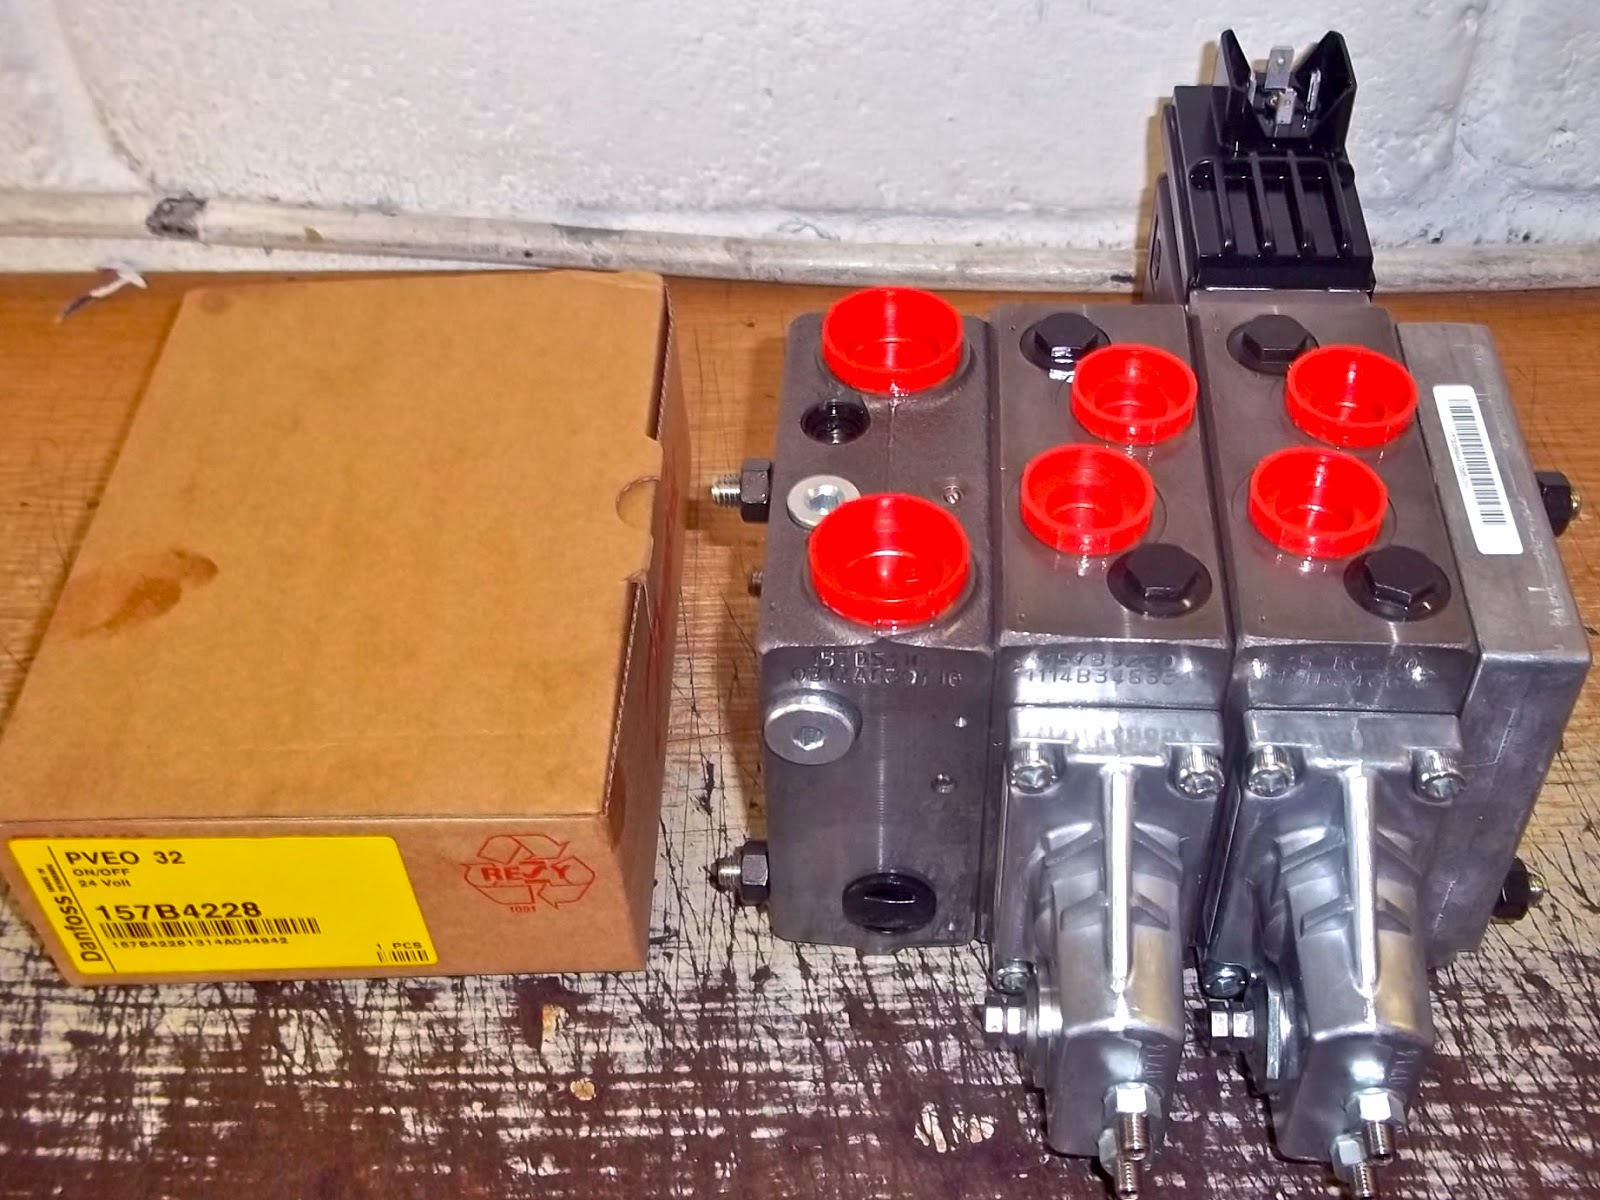 Danfoss PVG32 valve build two section